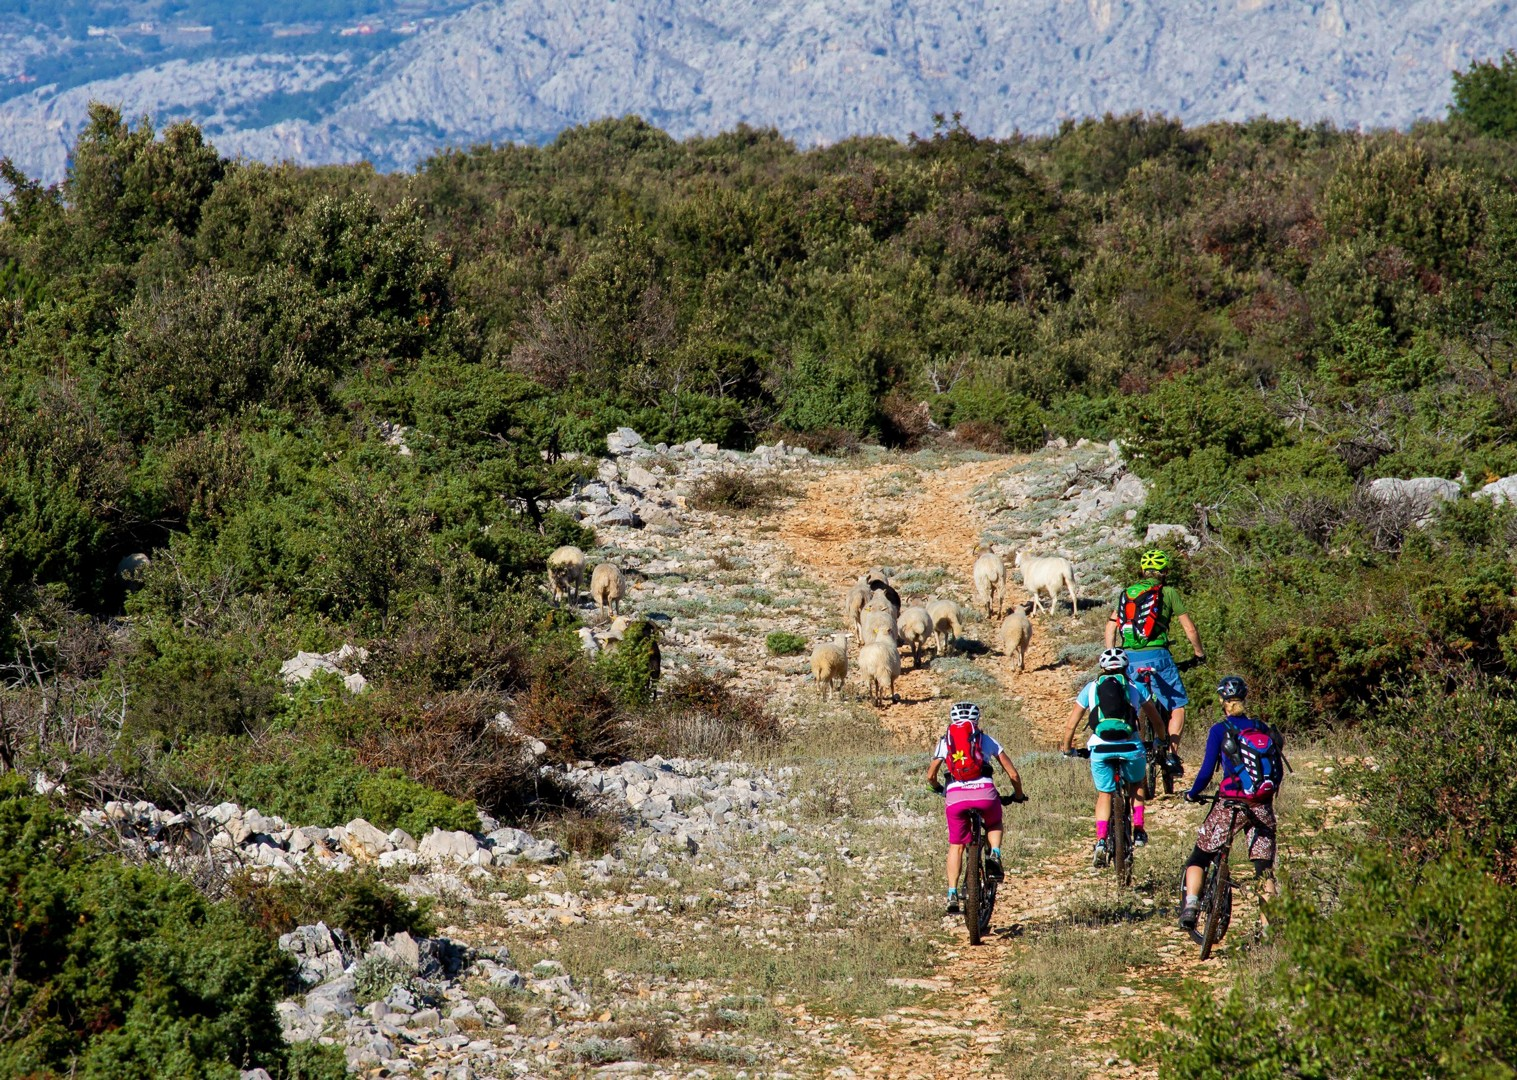 croatia-terra-magica-trip-singletrack-with-epic-sea-views-electric-mountain-bike.jpg - NEW! Croatia - Terra Magica - eMTB - Mountain Biking